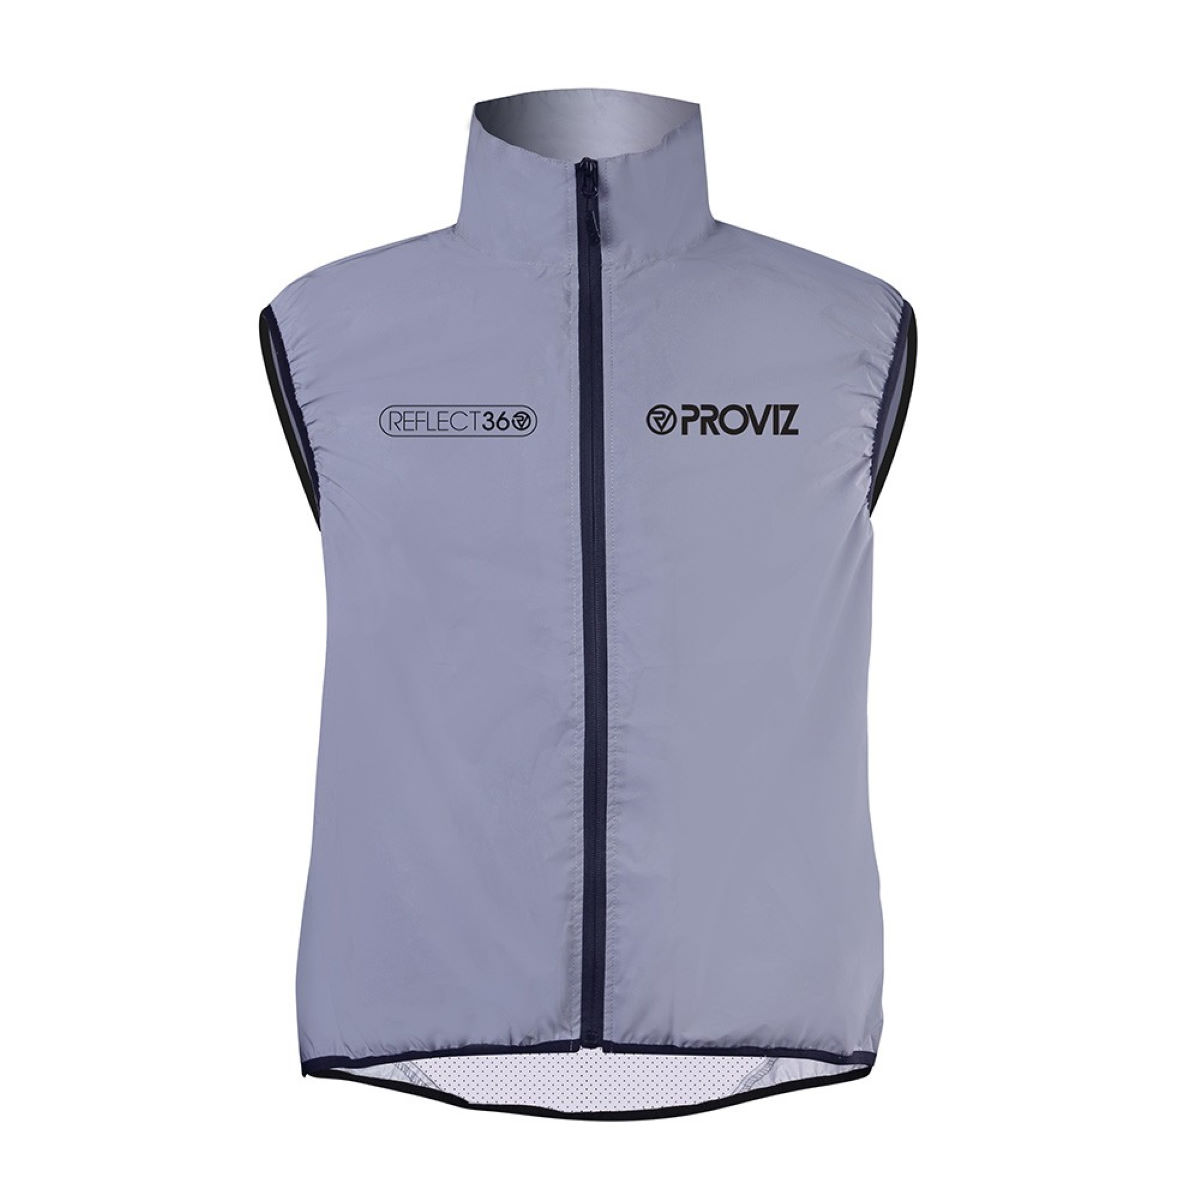 Gilet Proviz Reflect 360 (sans manches) - XX Large Reflective